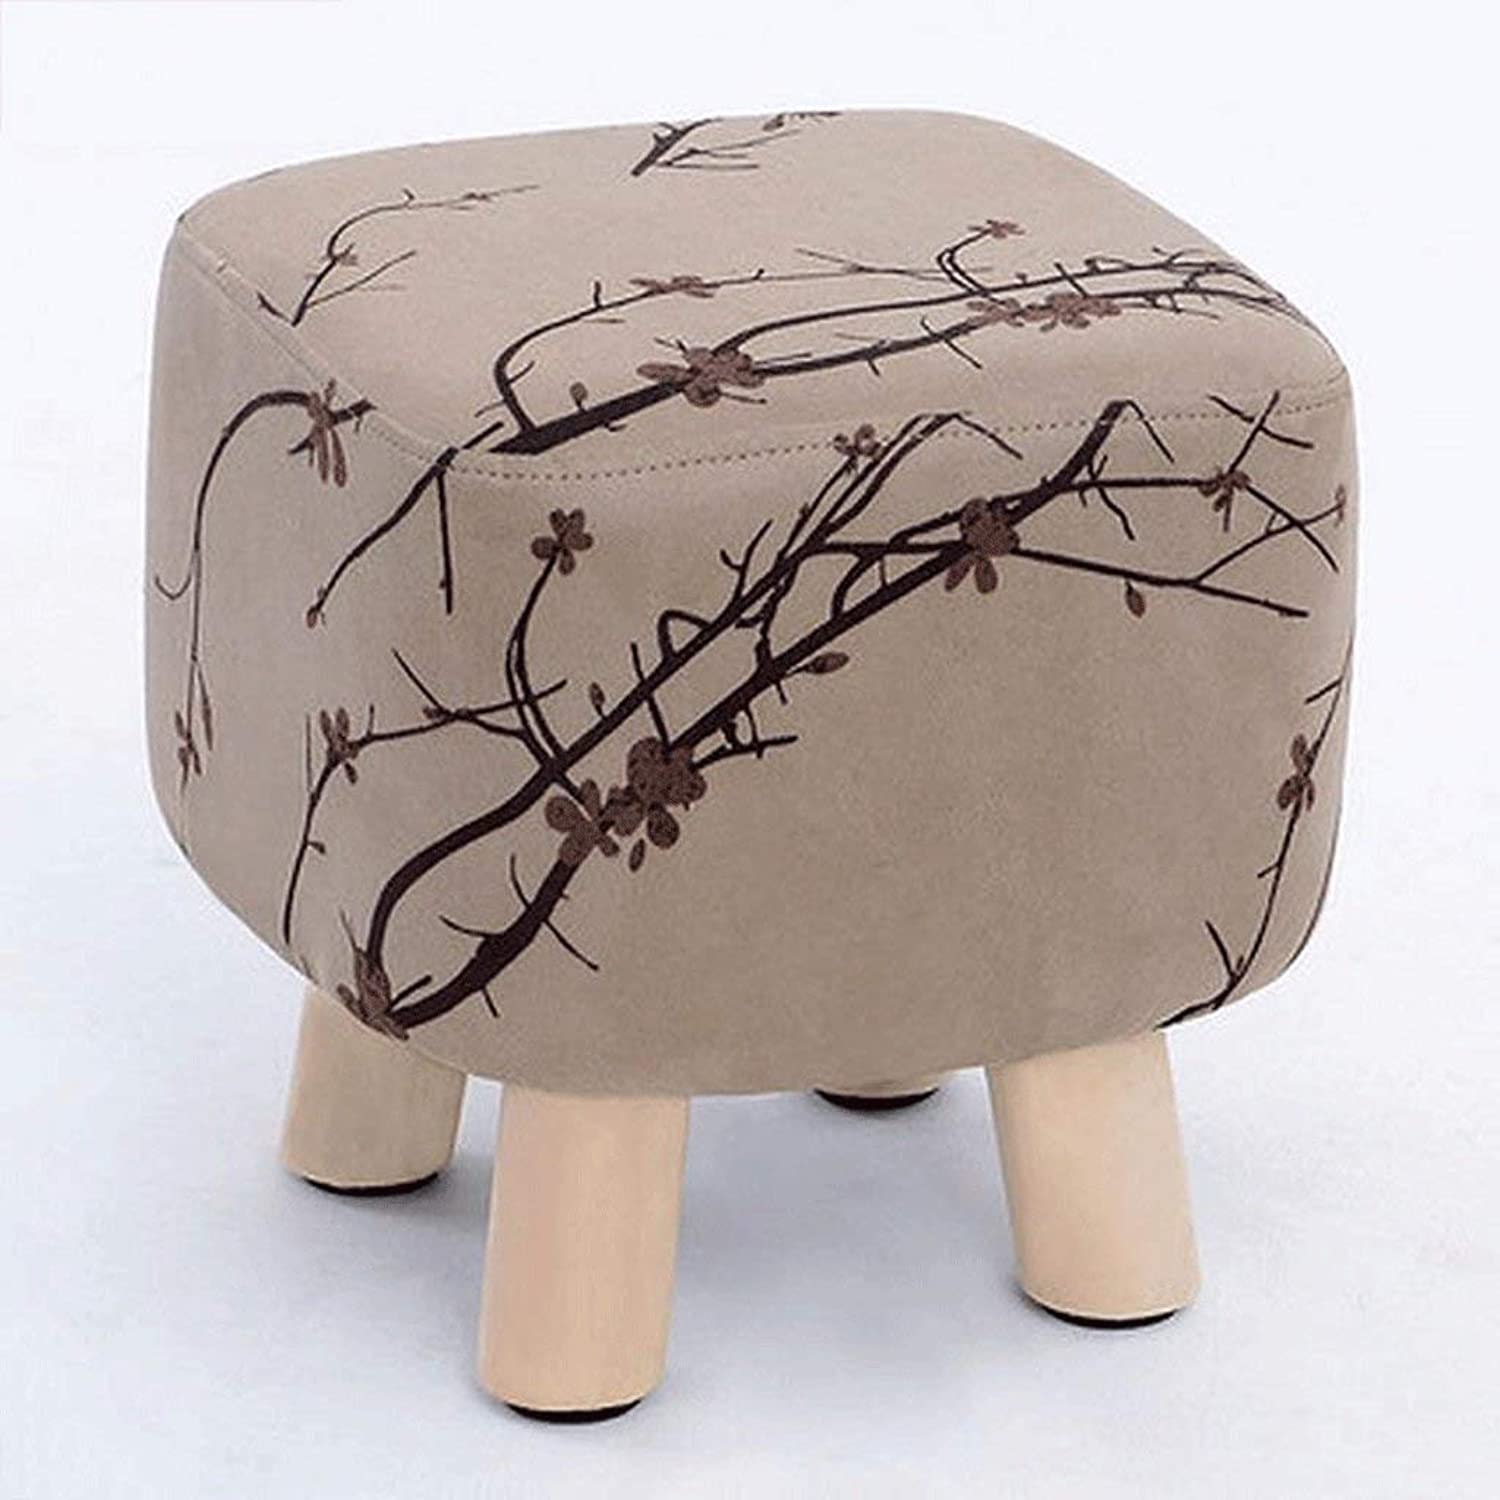 DYR Stool Solid Wood for shoes Stool Home Sofa Stool Tea Table Stool Small Stool Low Stool Round Stool (color  B)